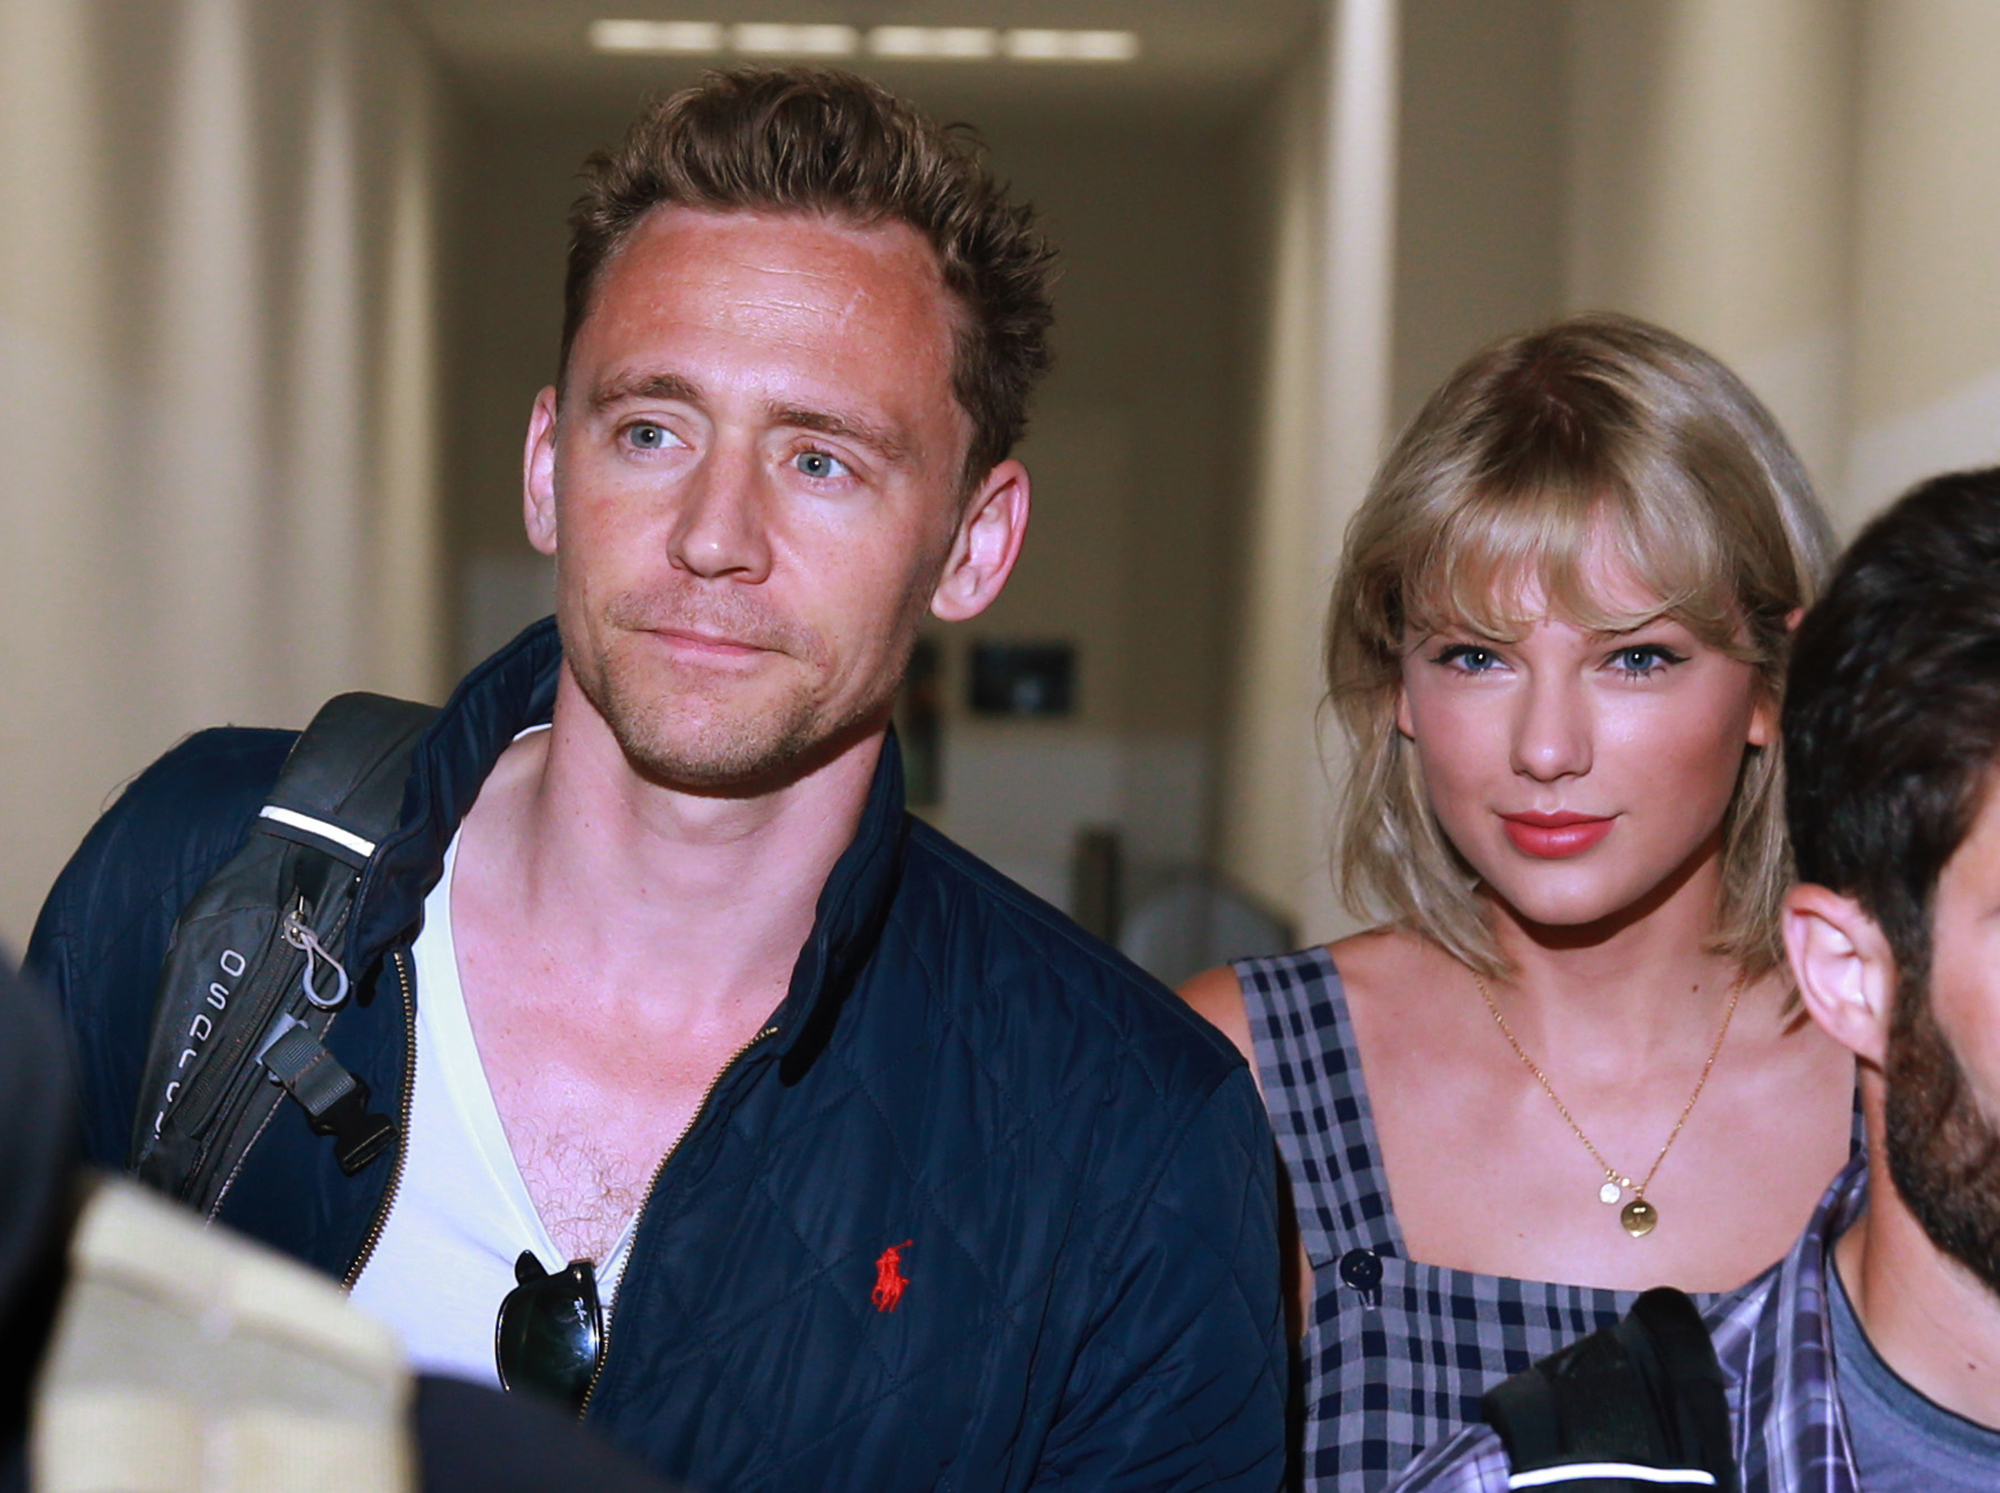 Actor Tom Hiddleston and singer Taylor Swift arrive at Sydney International Airport in Sydney, New South Wales. The couple are then believed to have got a connecting flight to the Gold Coast. (Photo by Cameron Richardson/Newspix/Getty Images)